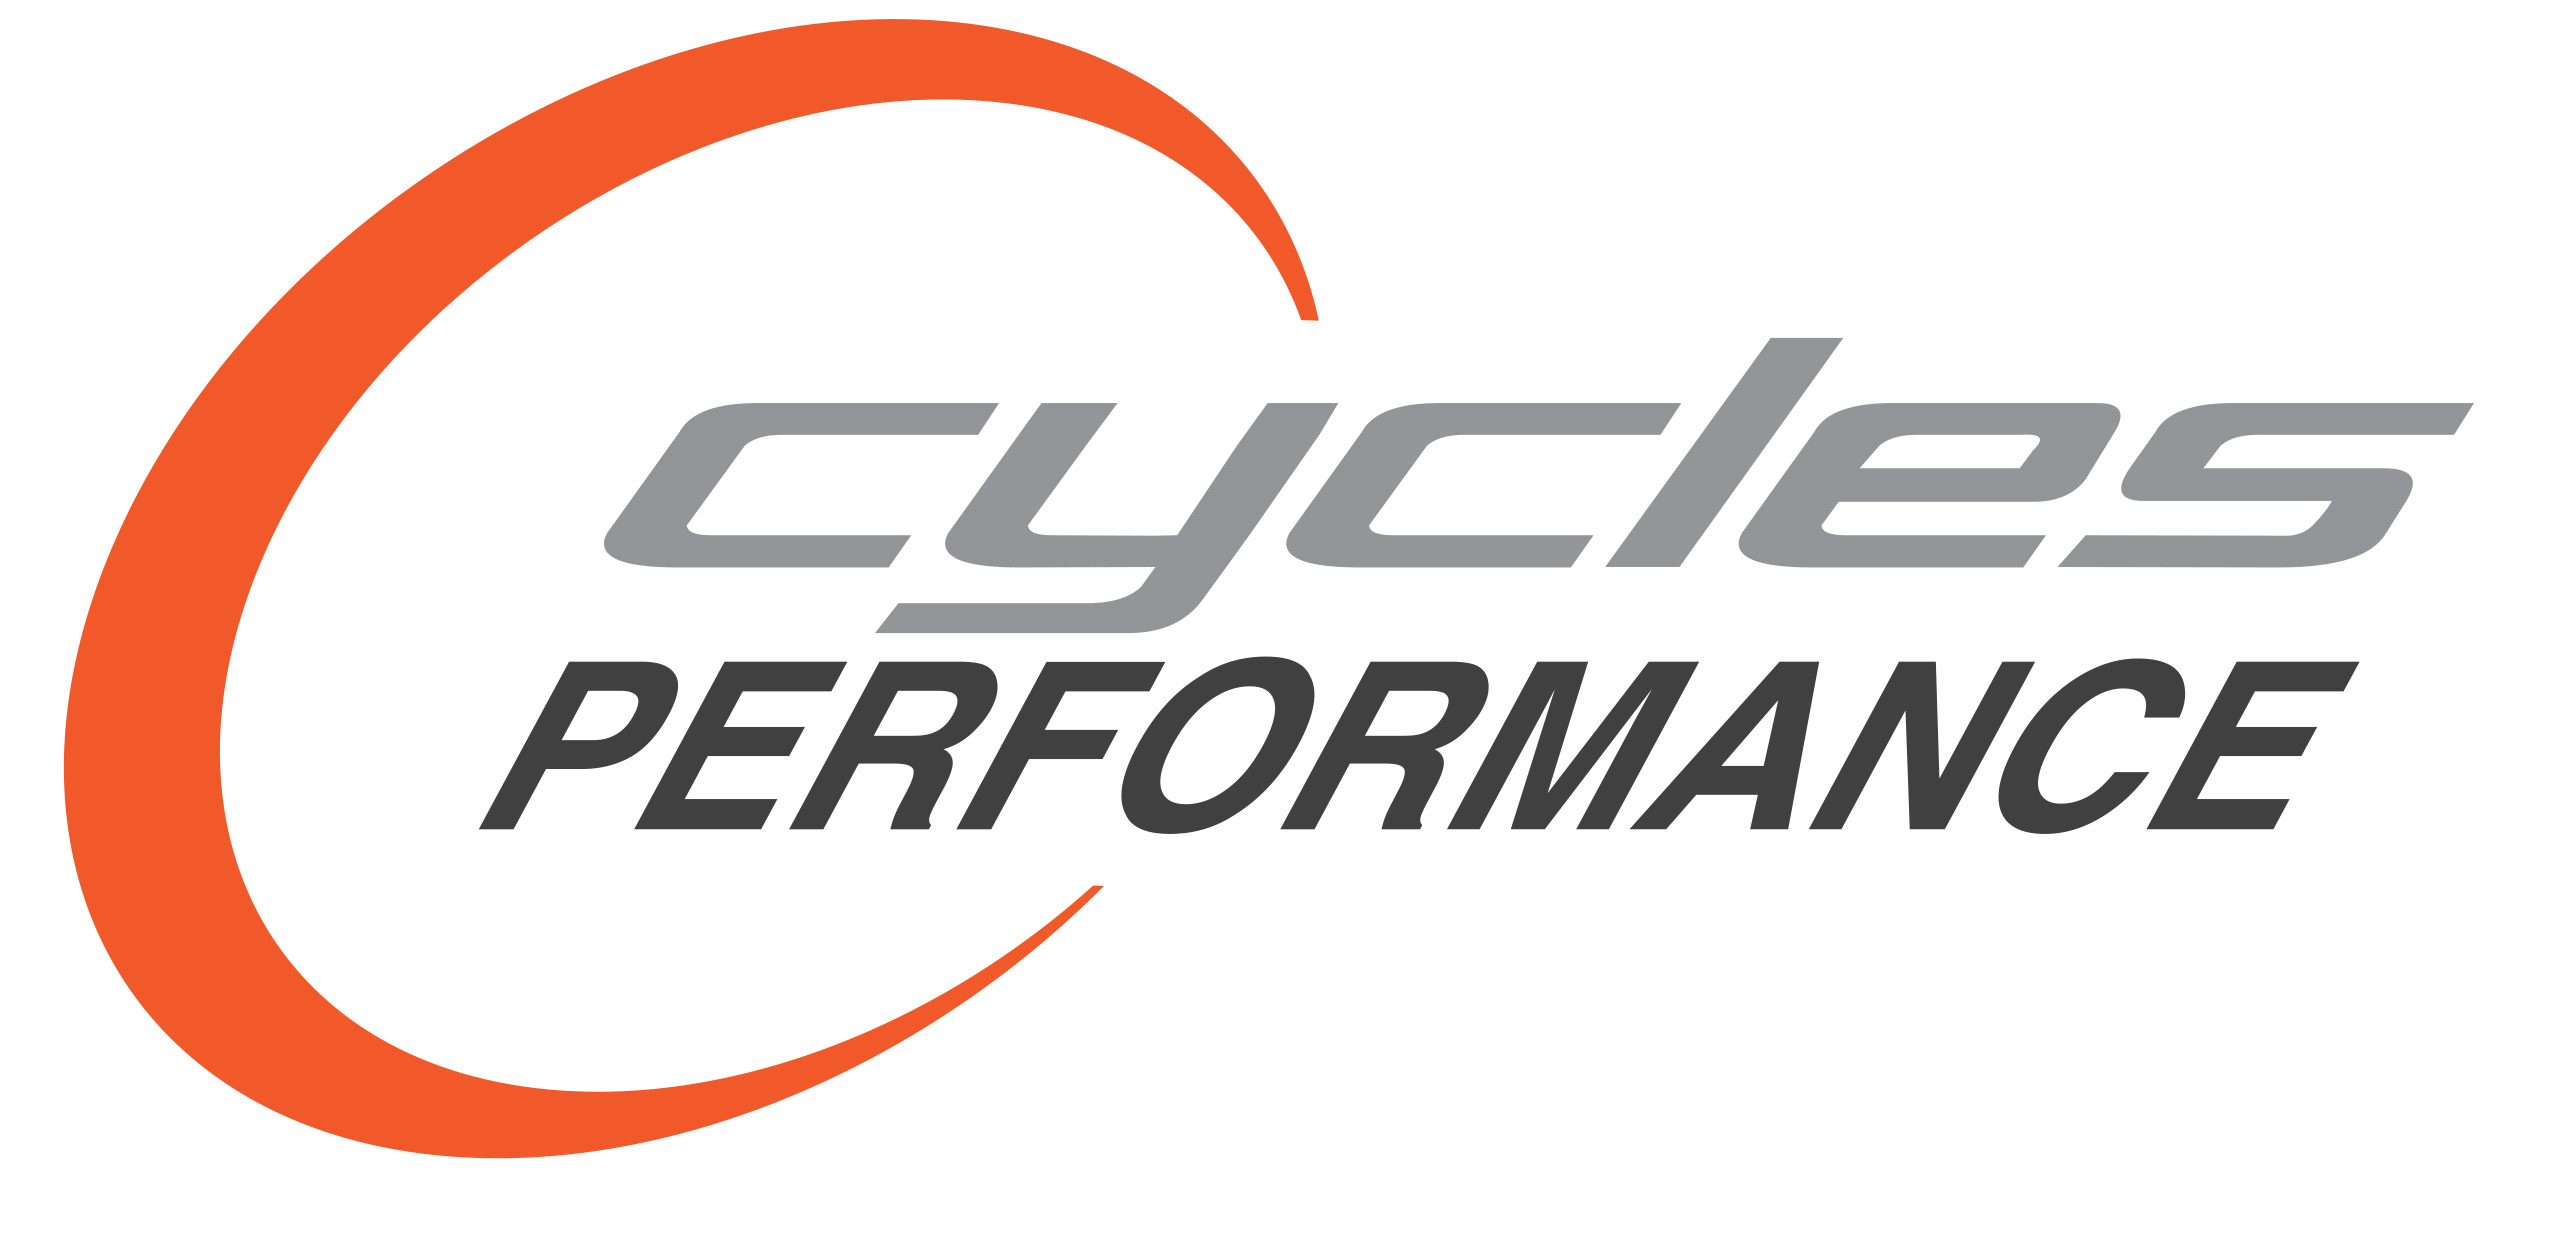 Cycles_Perfo_logo2012_CMYK